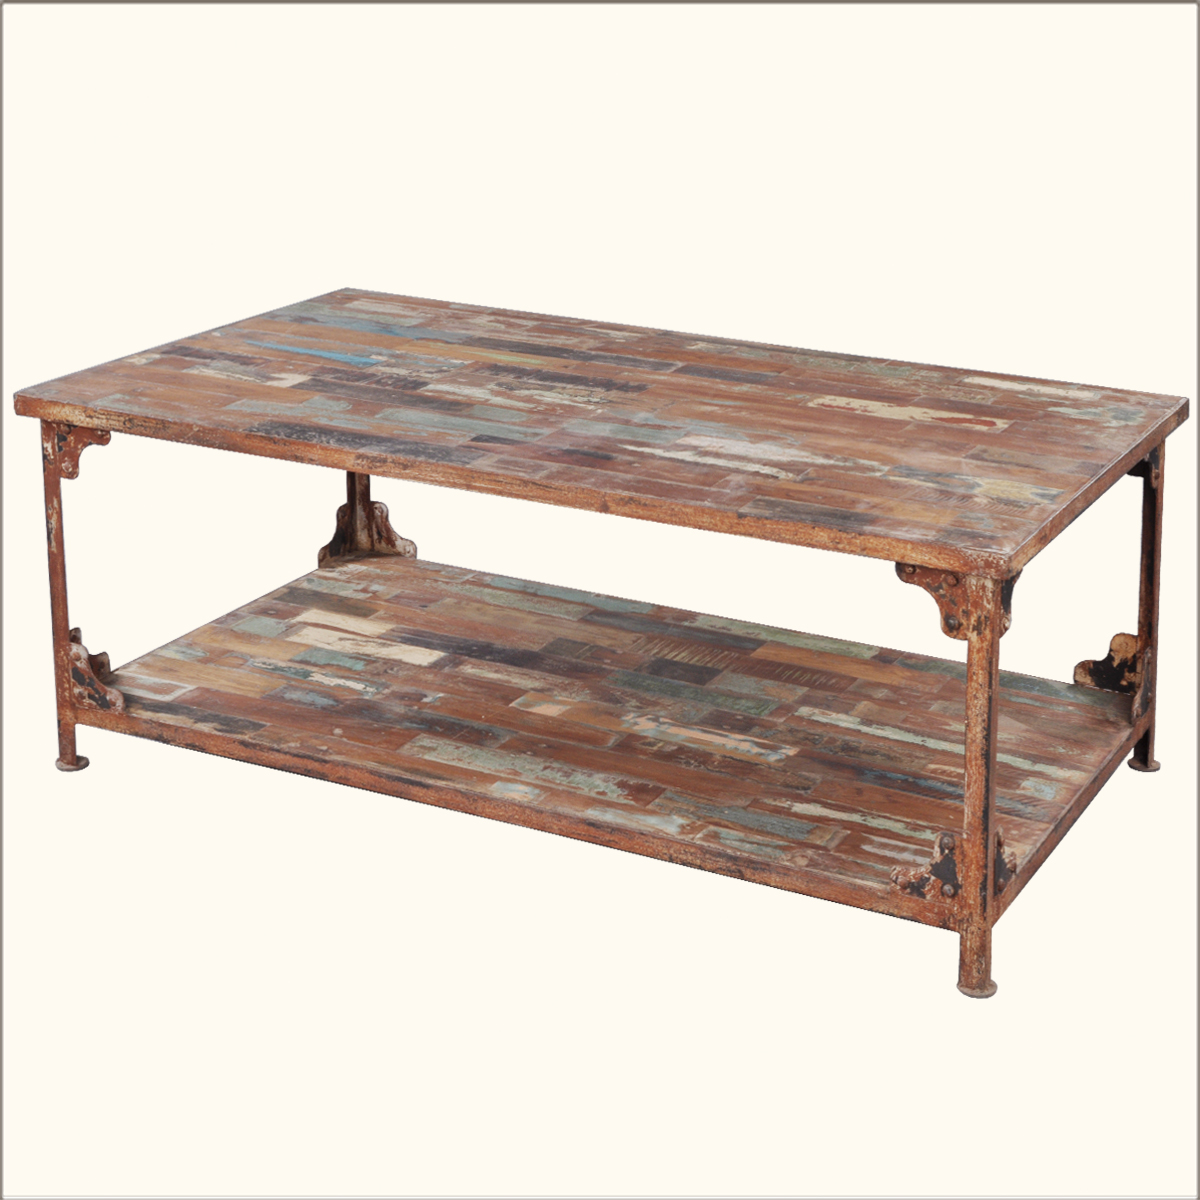 1. Distressed Reclaimed Wood Industrial Coffee Table